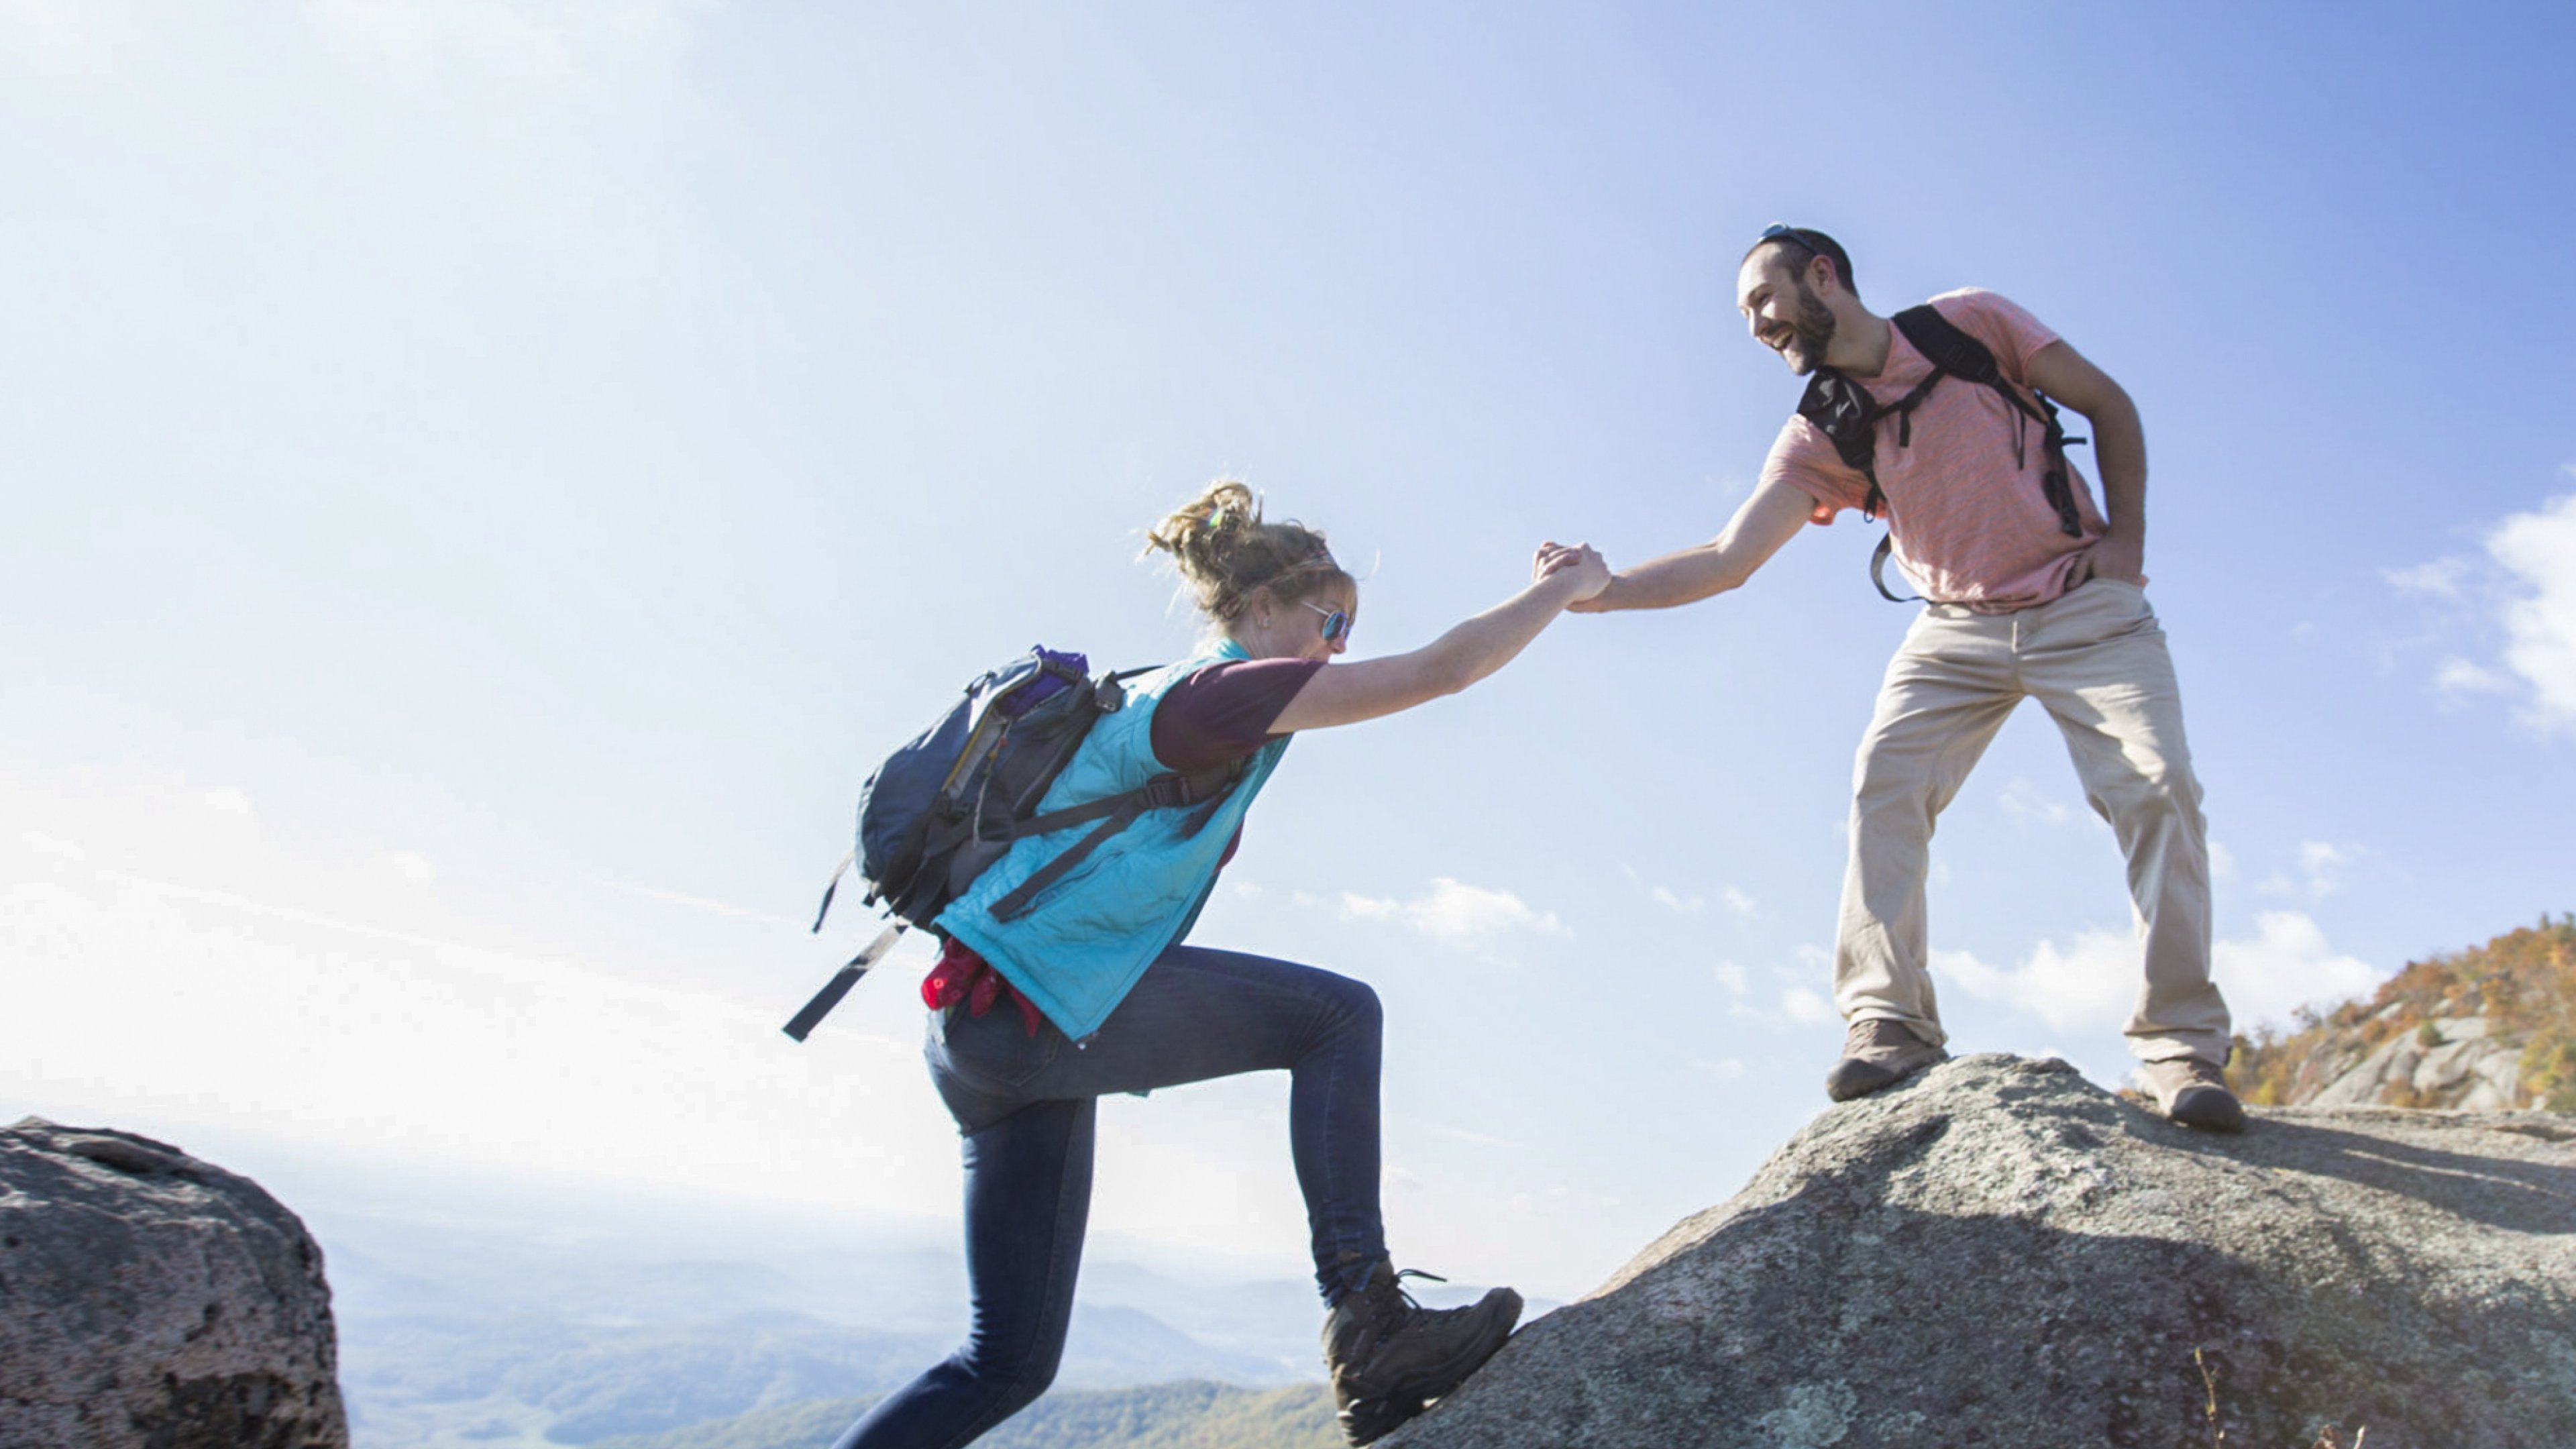 one hiker lends a hand to another to step between rocks